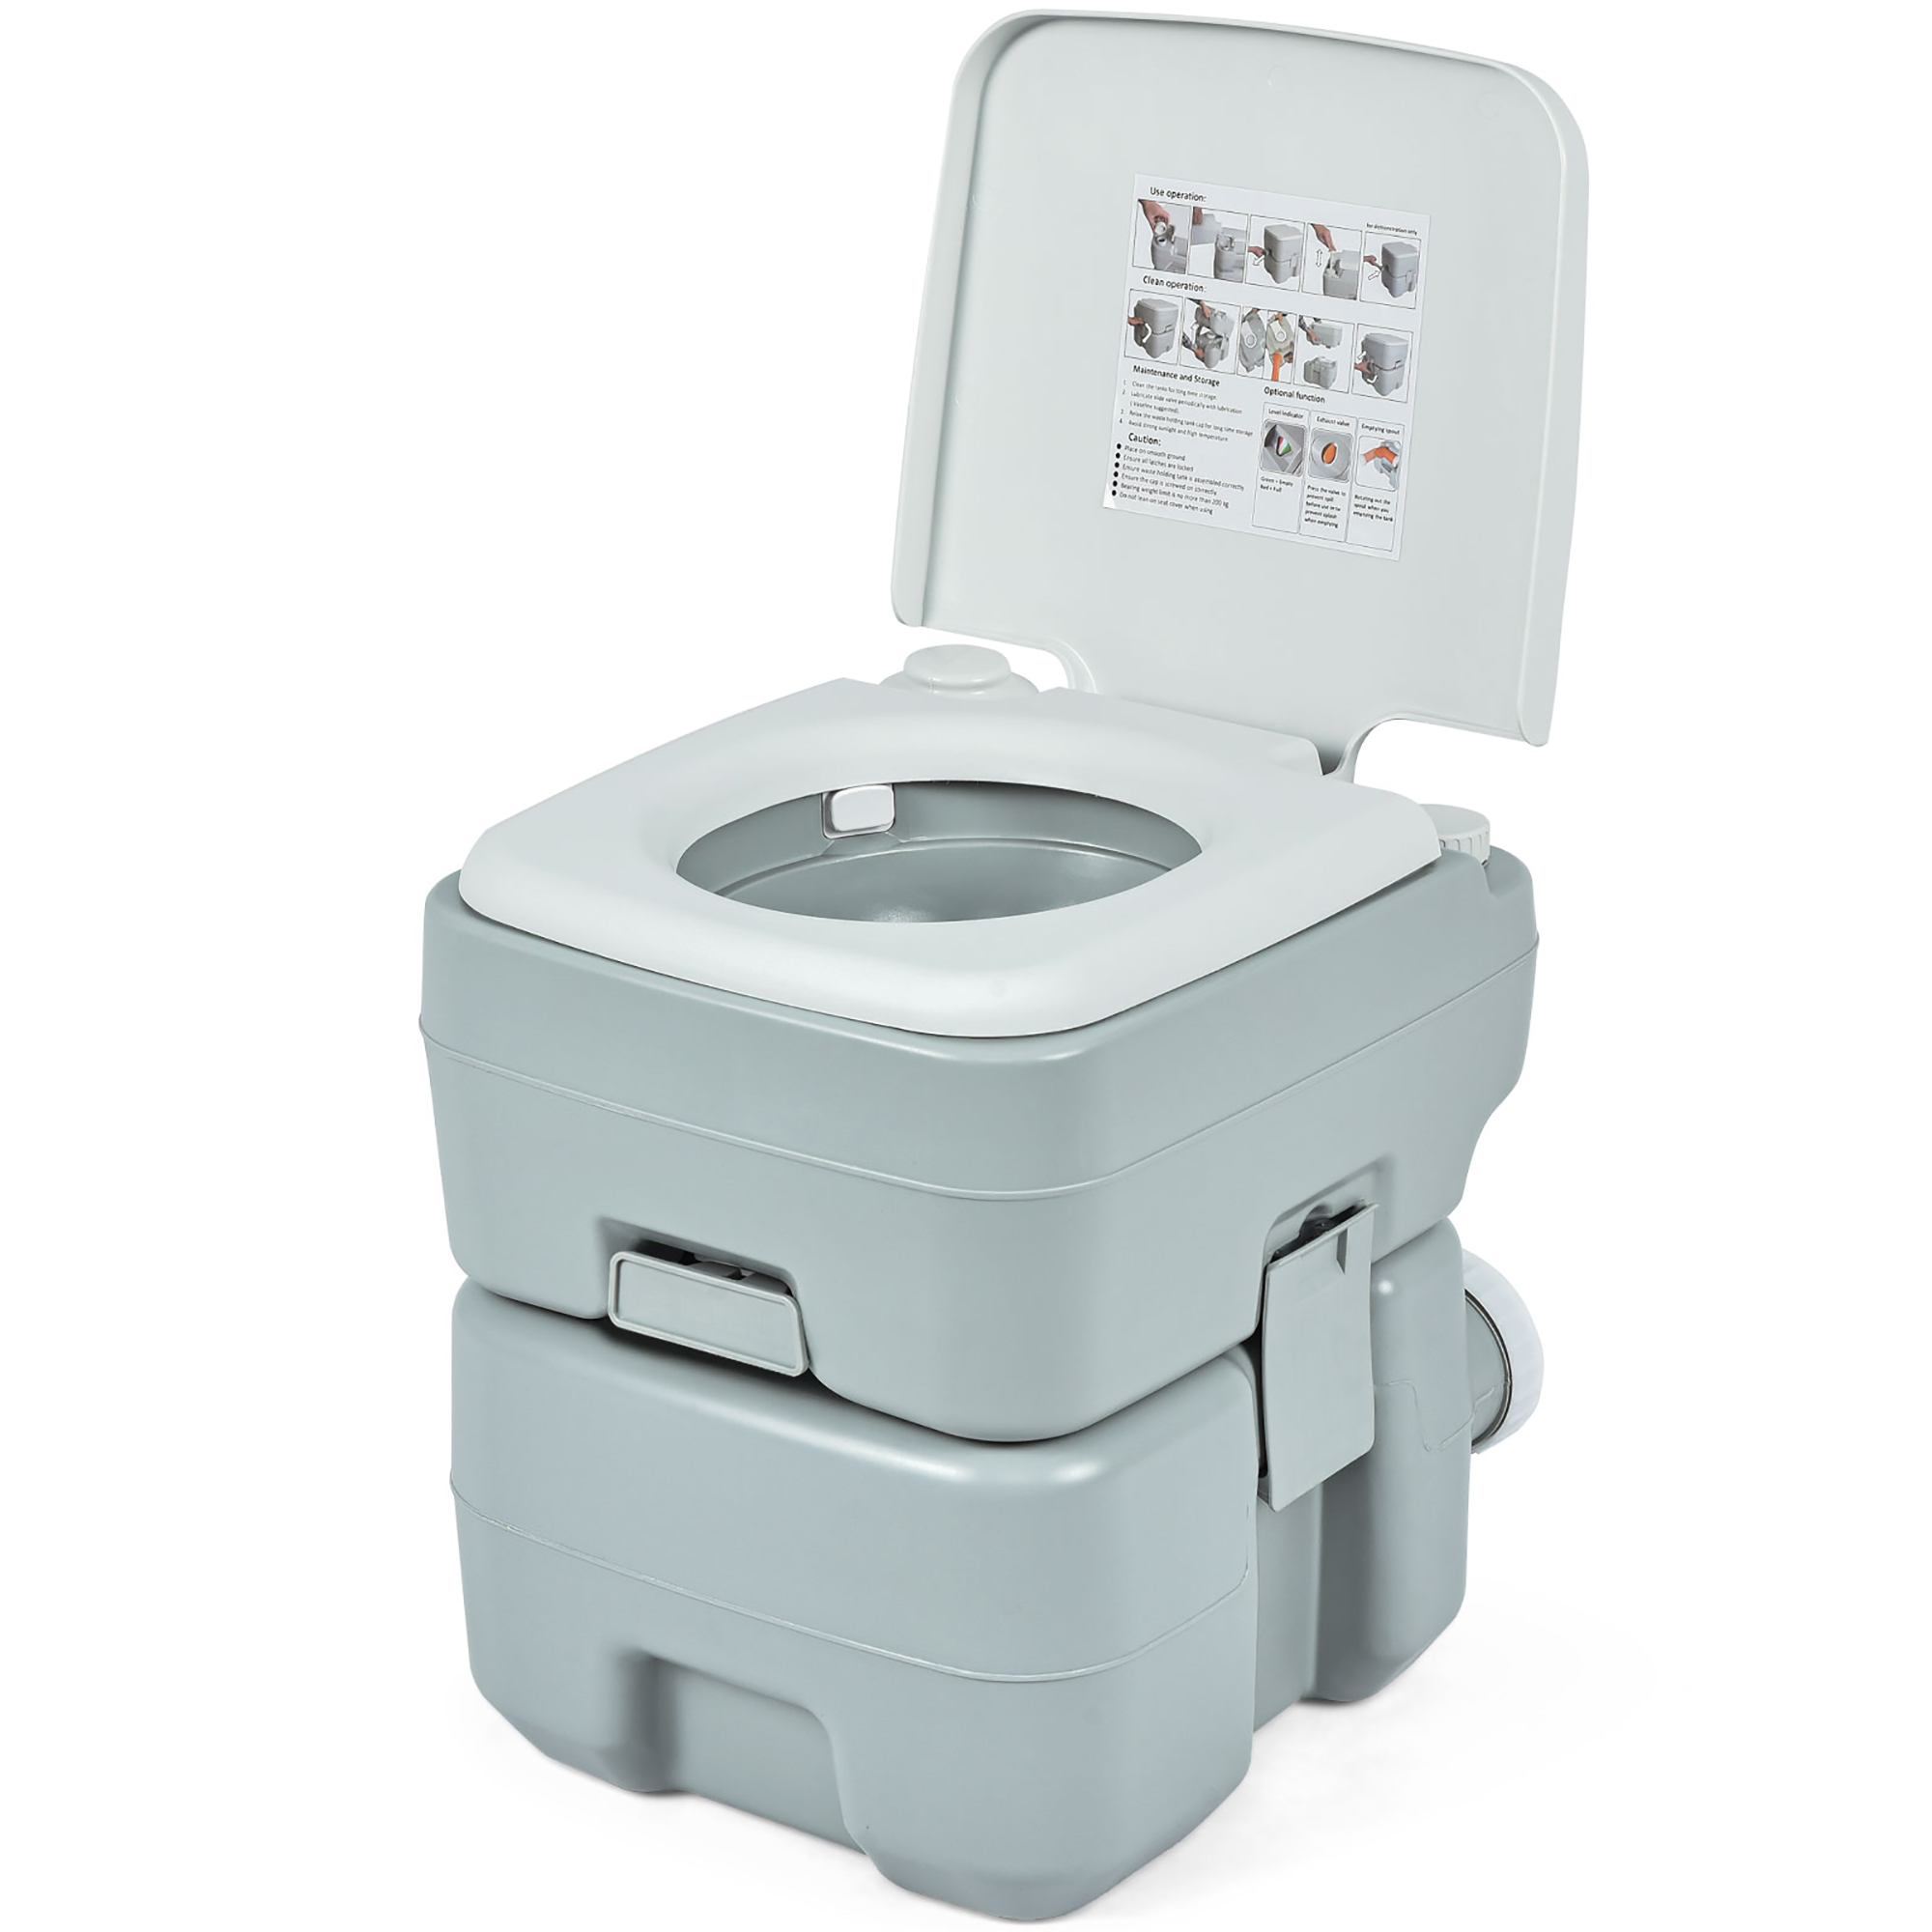 Details about  /Portable 5.3 Gallon 20L Toilet Flush Travel Camping Outdoor Indoor Commode Potty